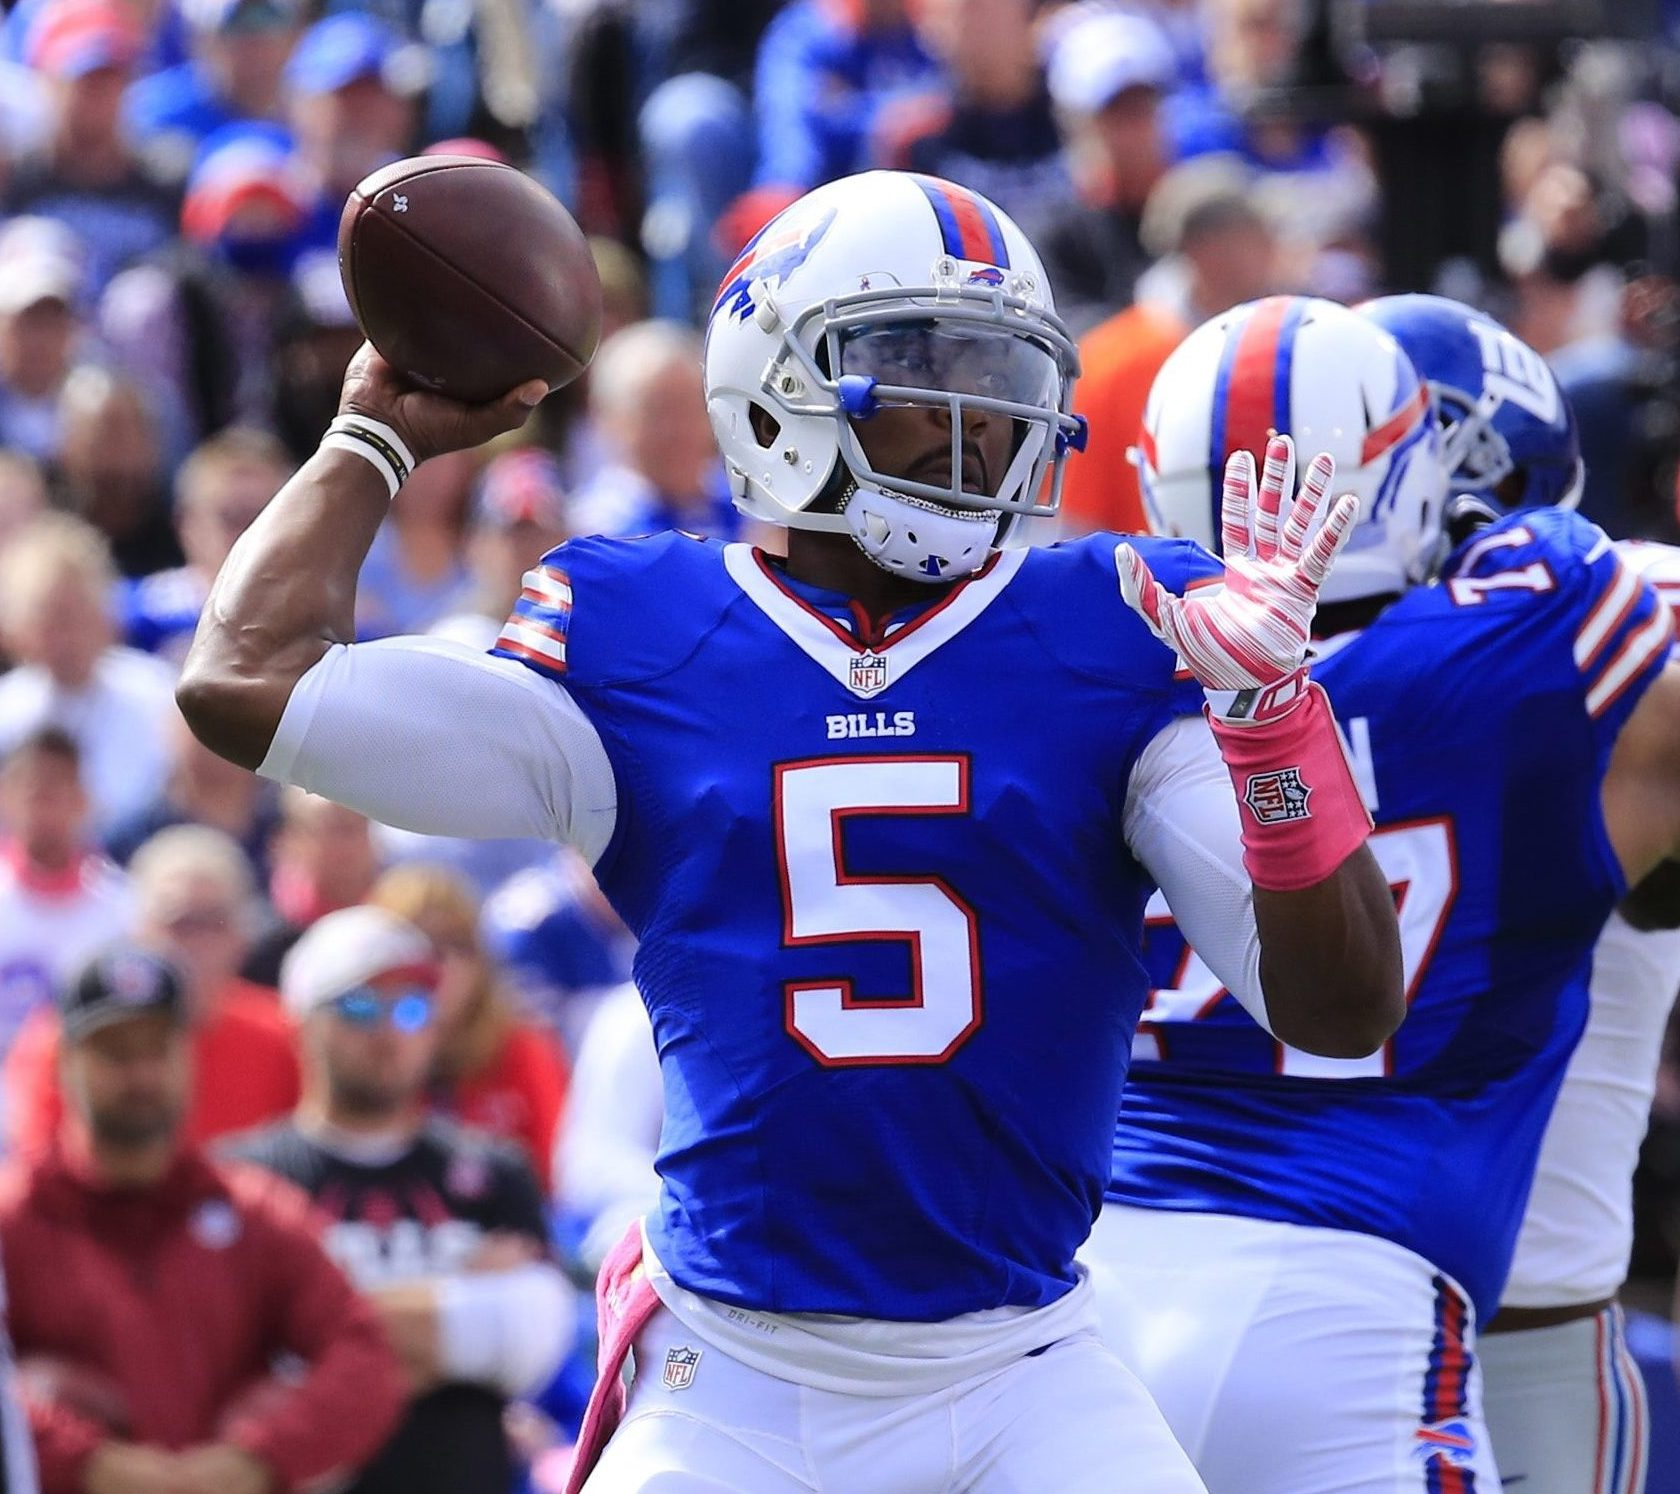 The Bills are still pursuing a long-term contract with Tyrod Taylor. (Harry Scull Jr./Buffalo News)